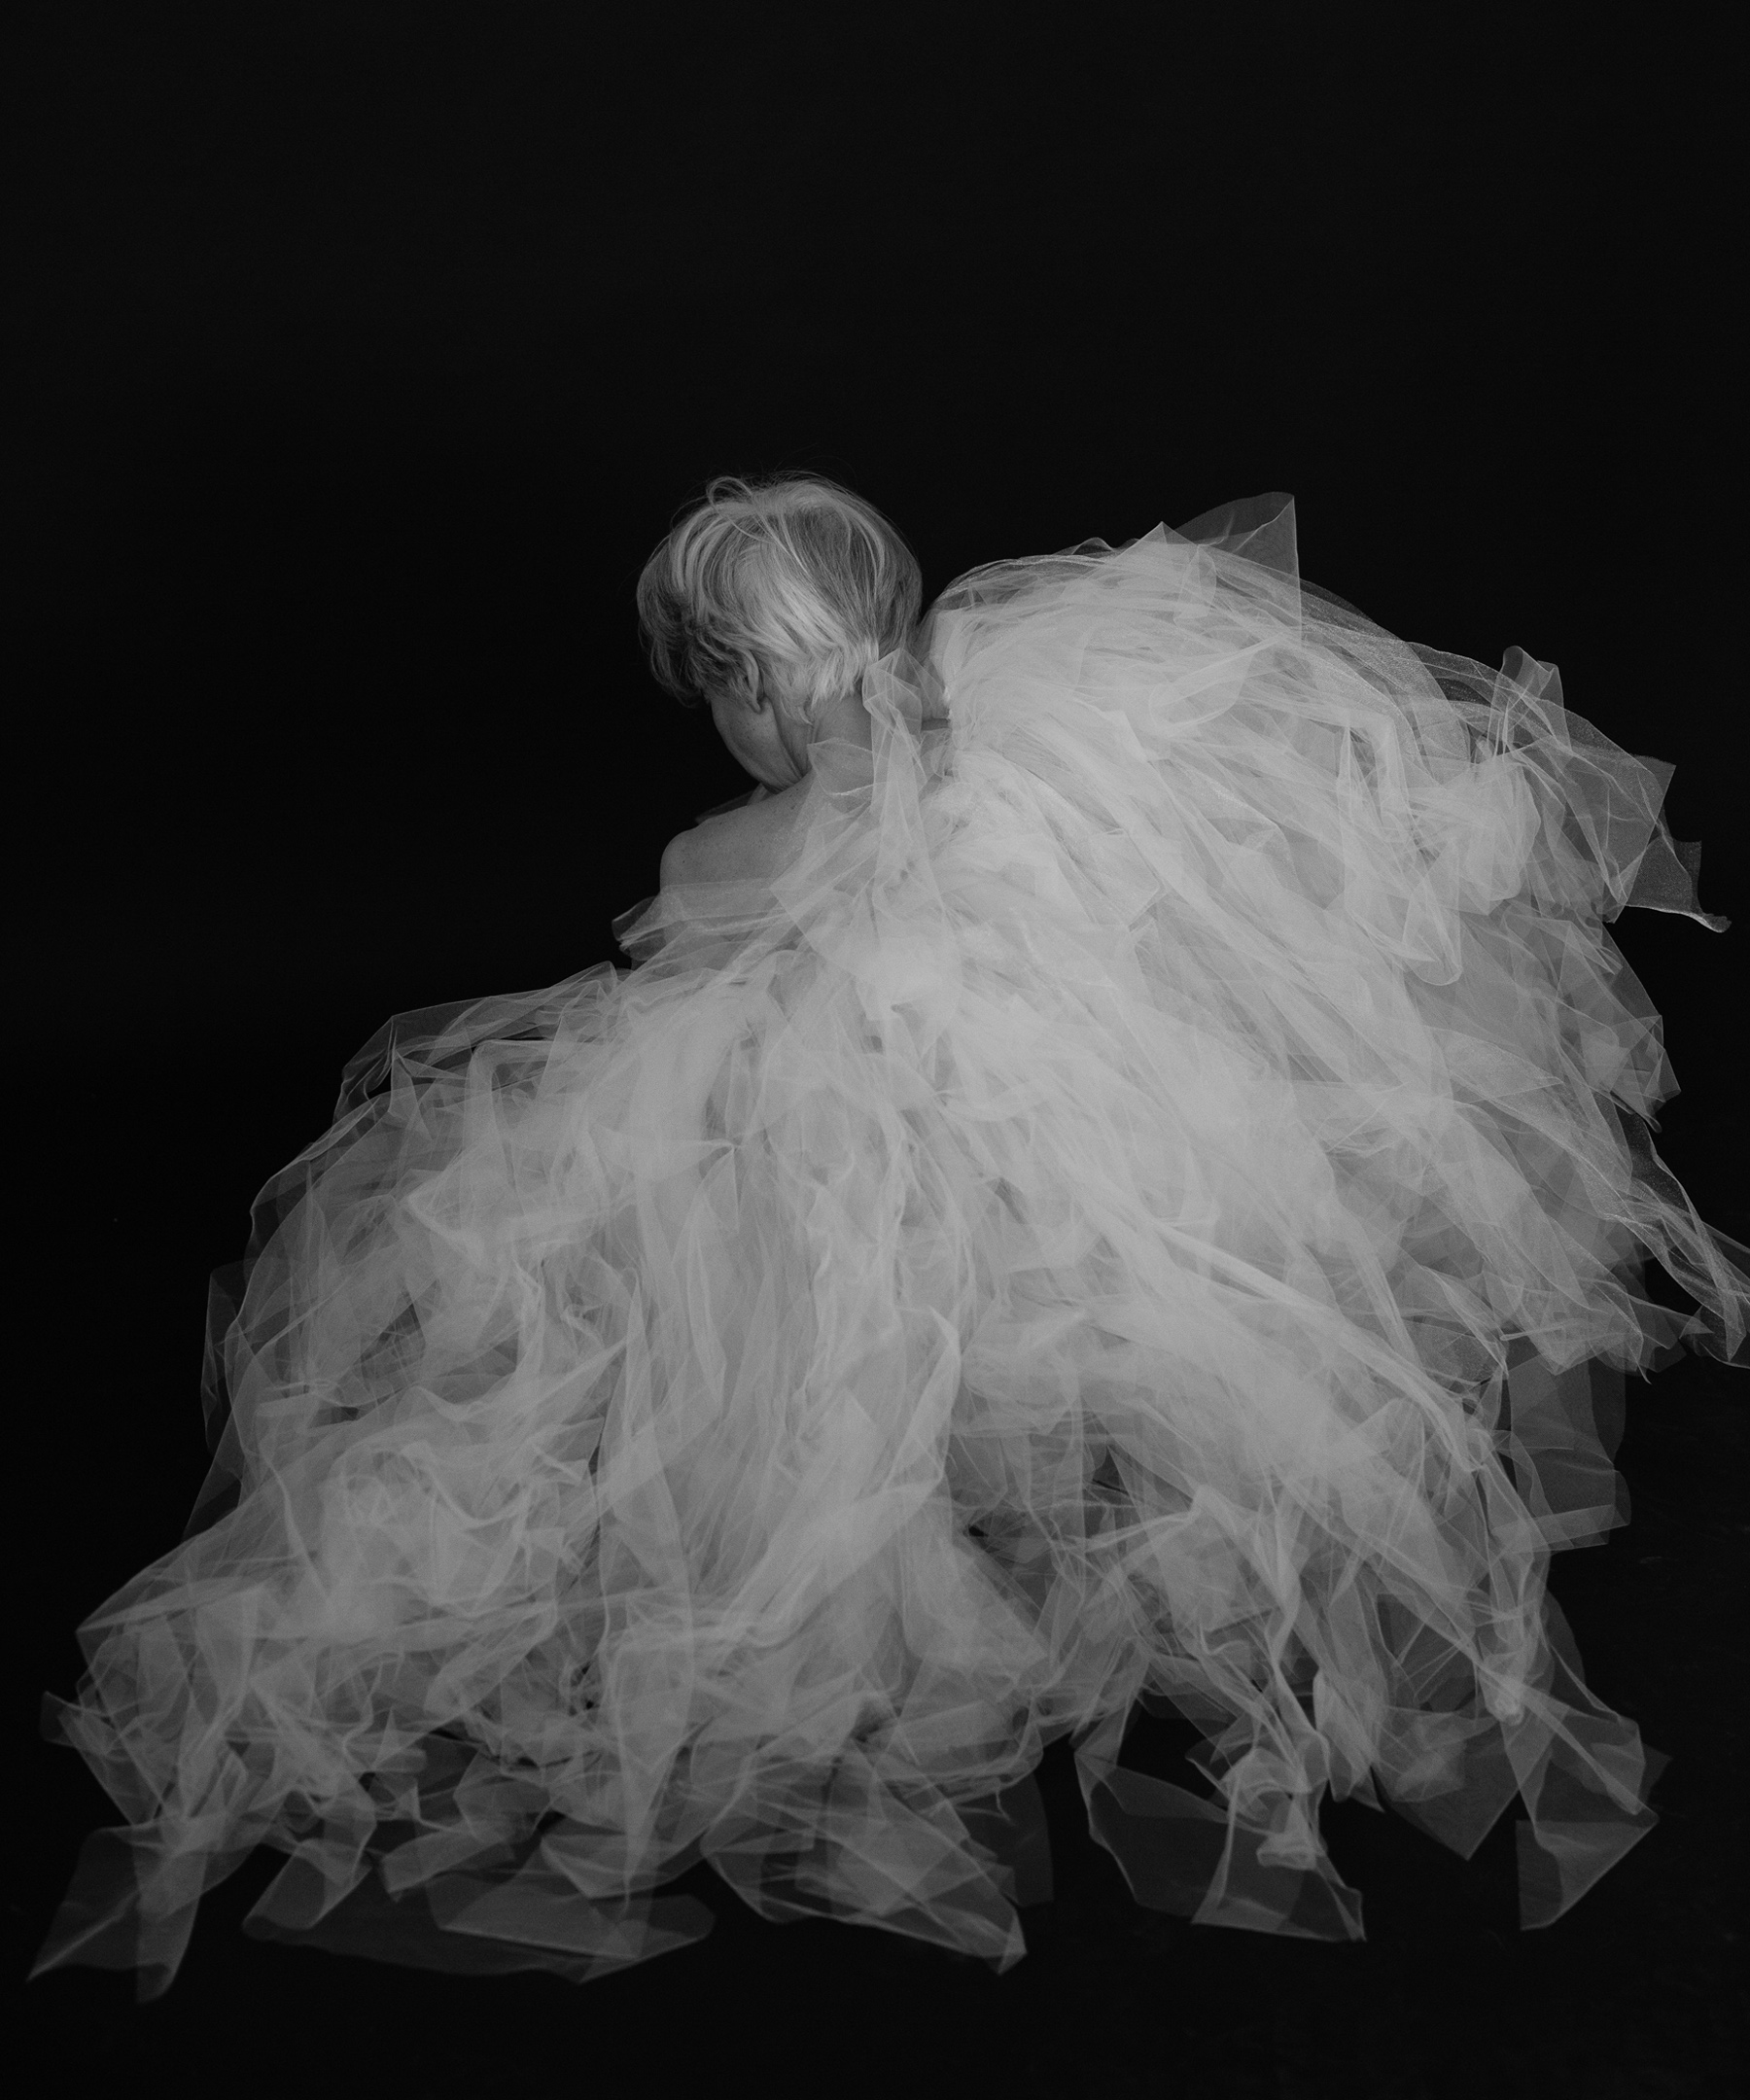 Valerie Madonia in a nest of tulle for fine art dancer photo session with photographer Jennifer Koskinen, Merritt Portrait Studio